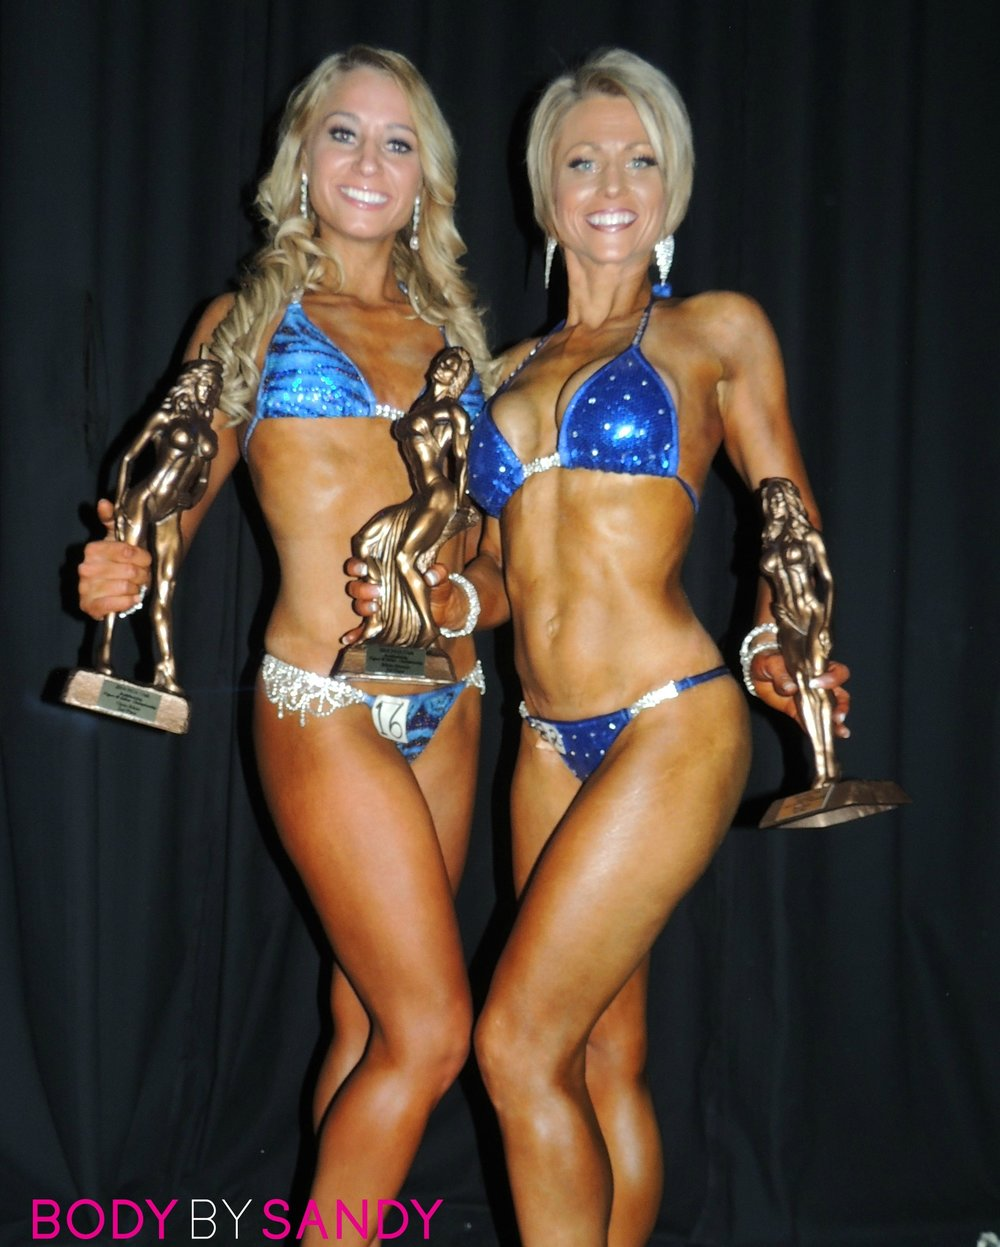 2014 NGA Utah Natural-trophies.JPG